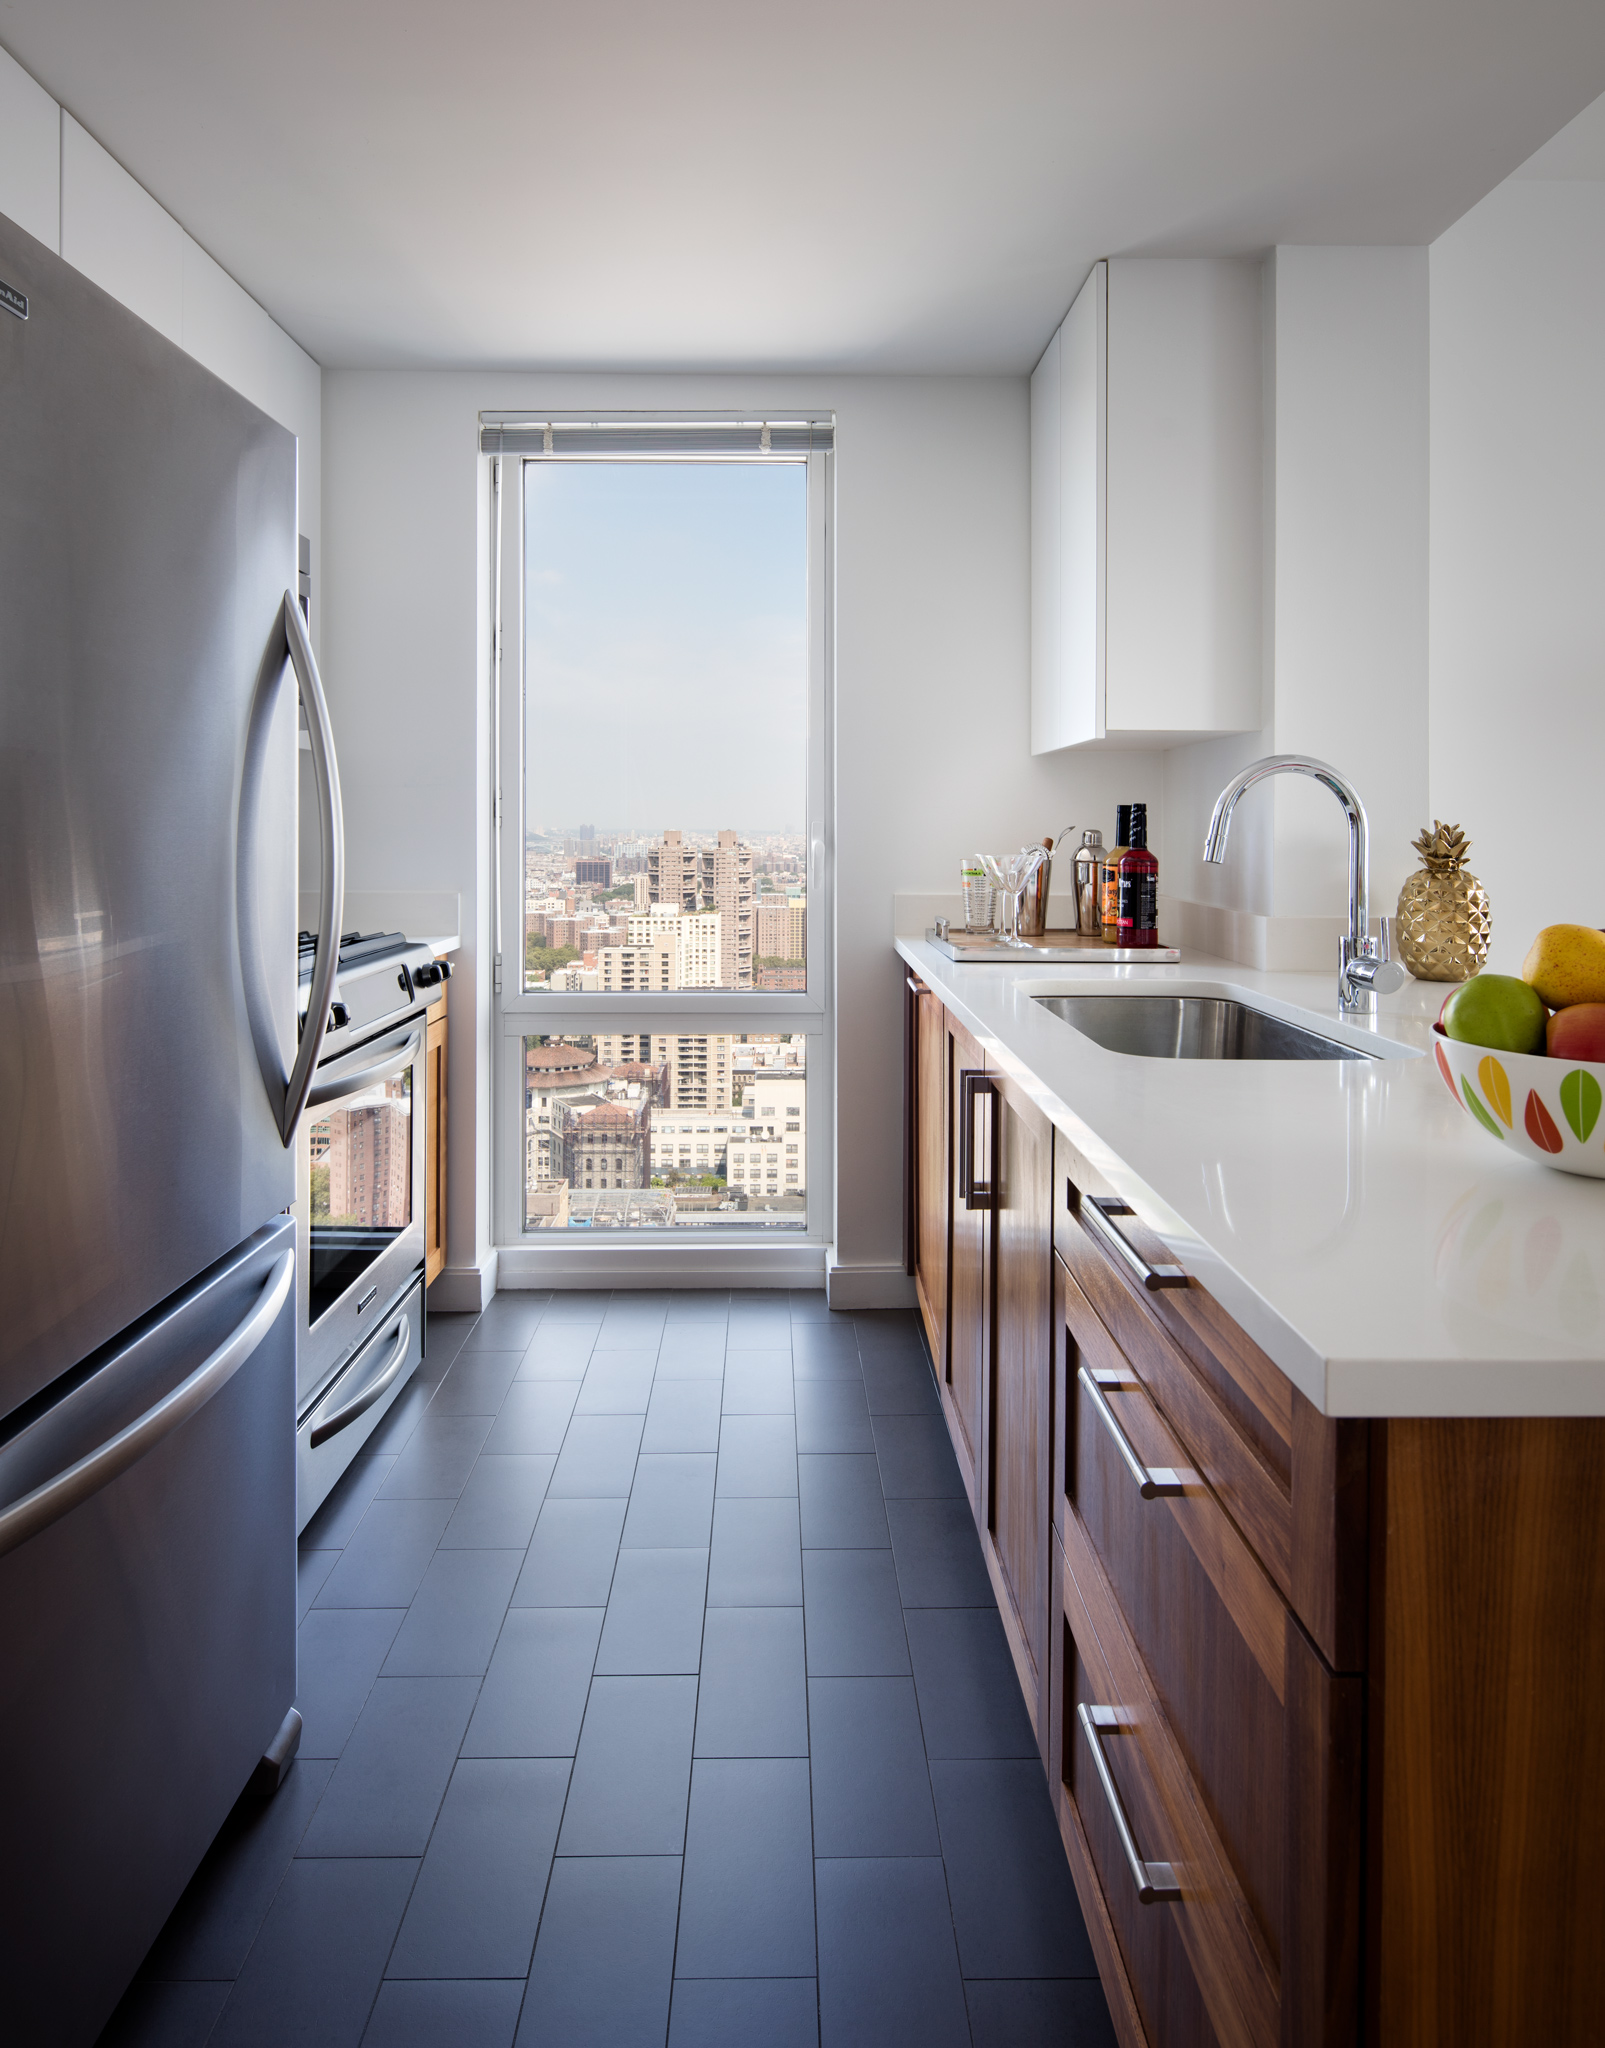 cuny city college apartments and houses for rent near cuny city